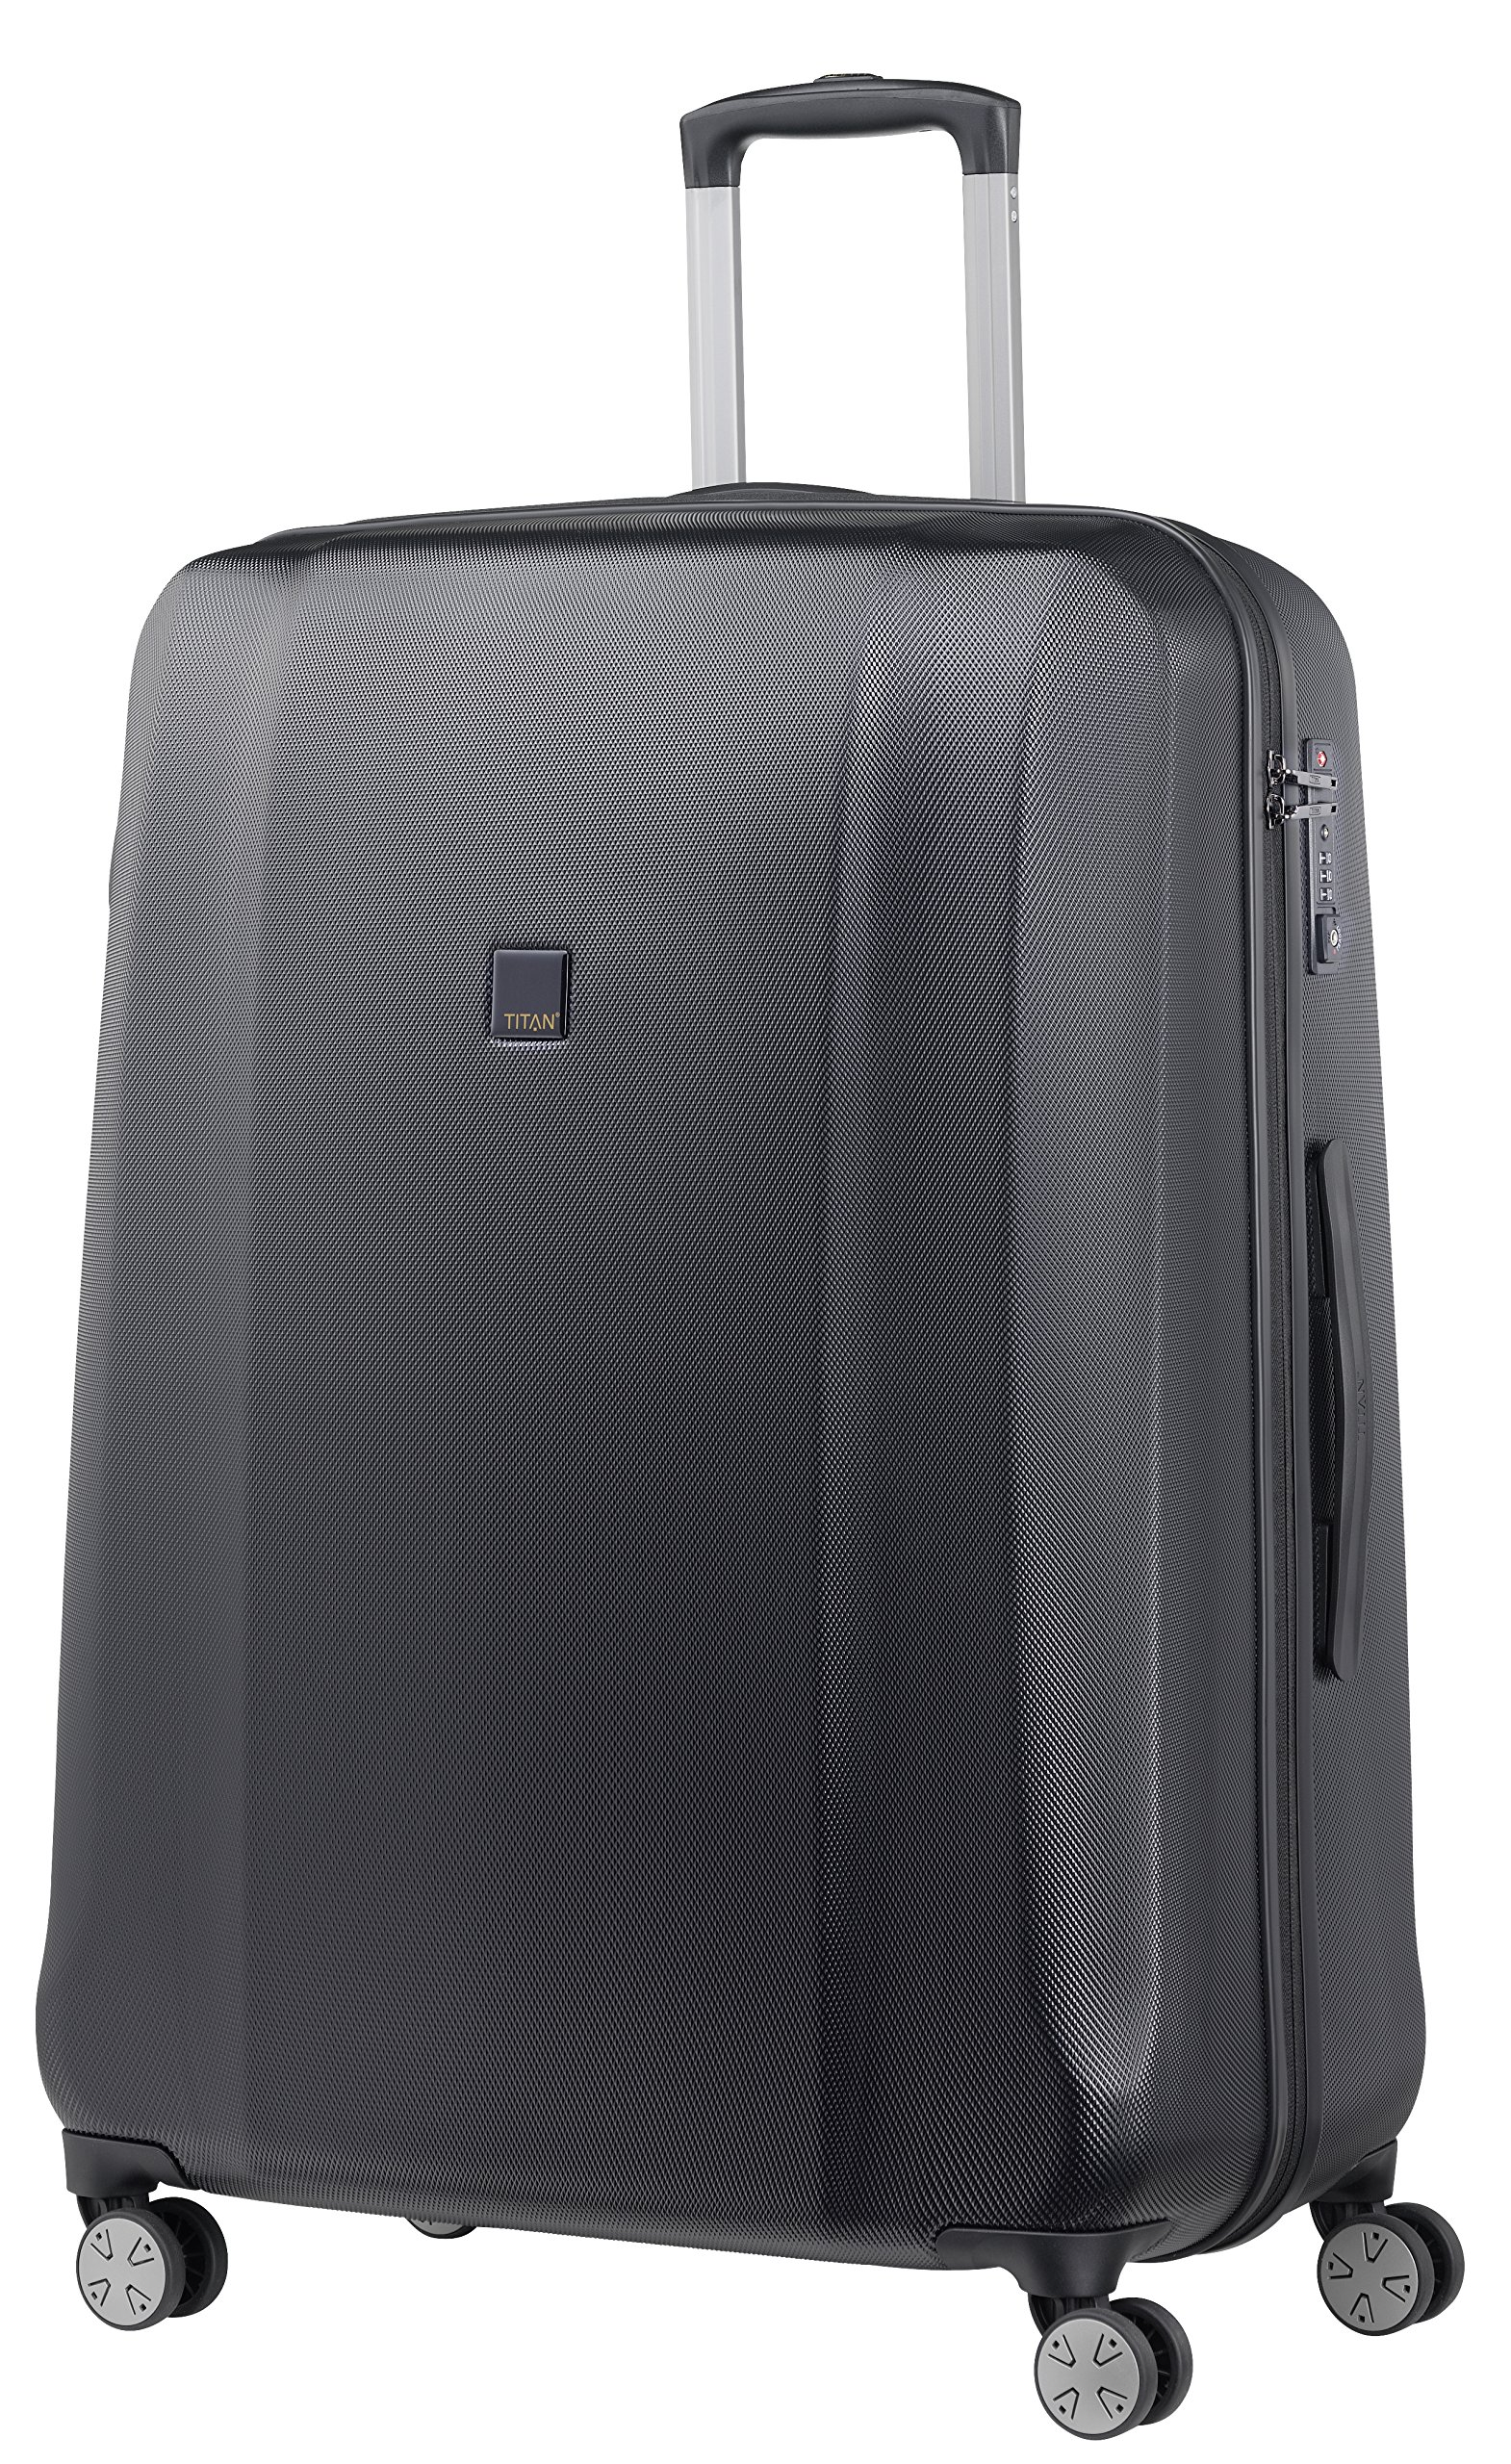 TITAN Luggage XENON Hardshell Suitcase 3 Piece Set (Multi)